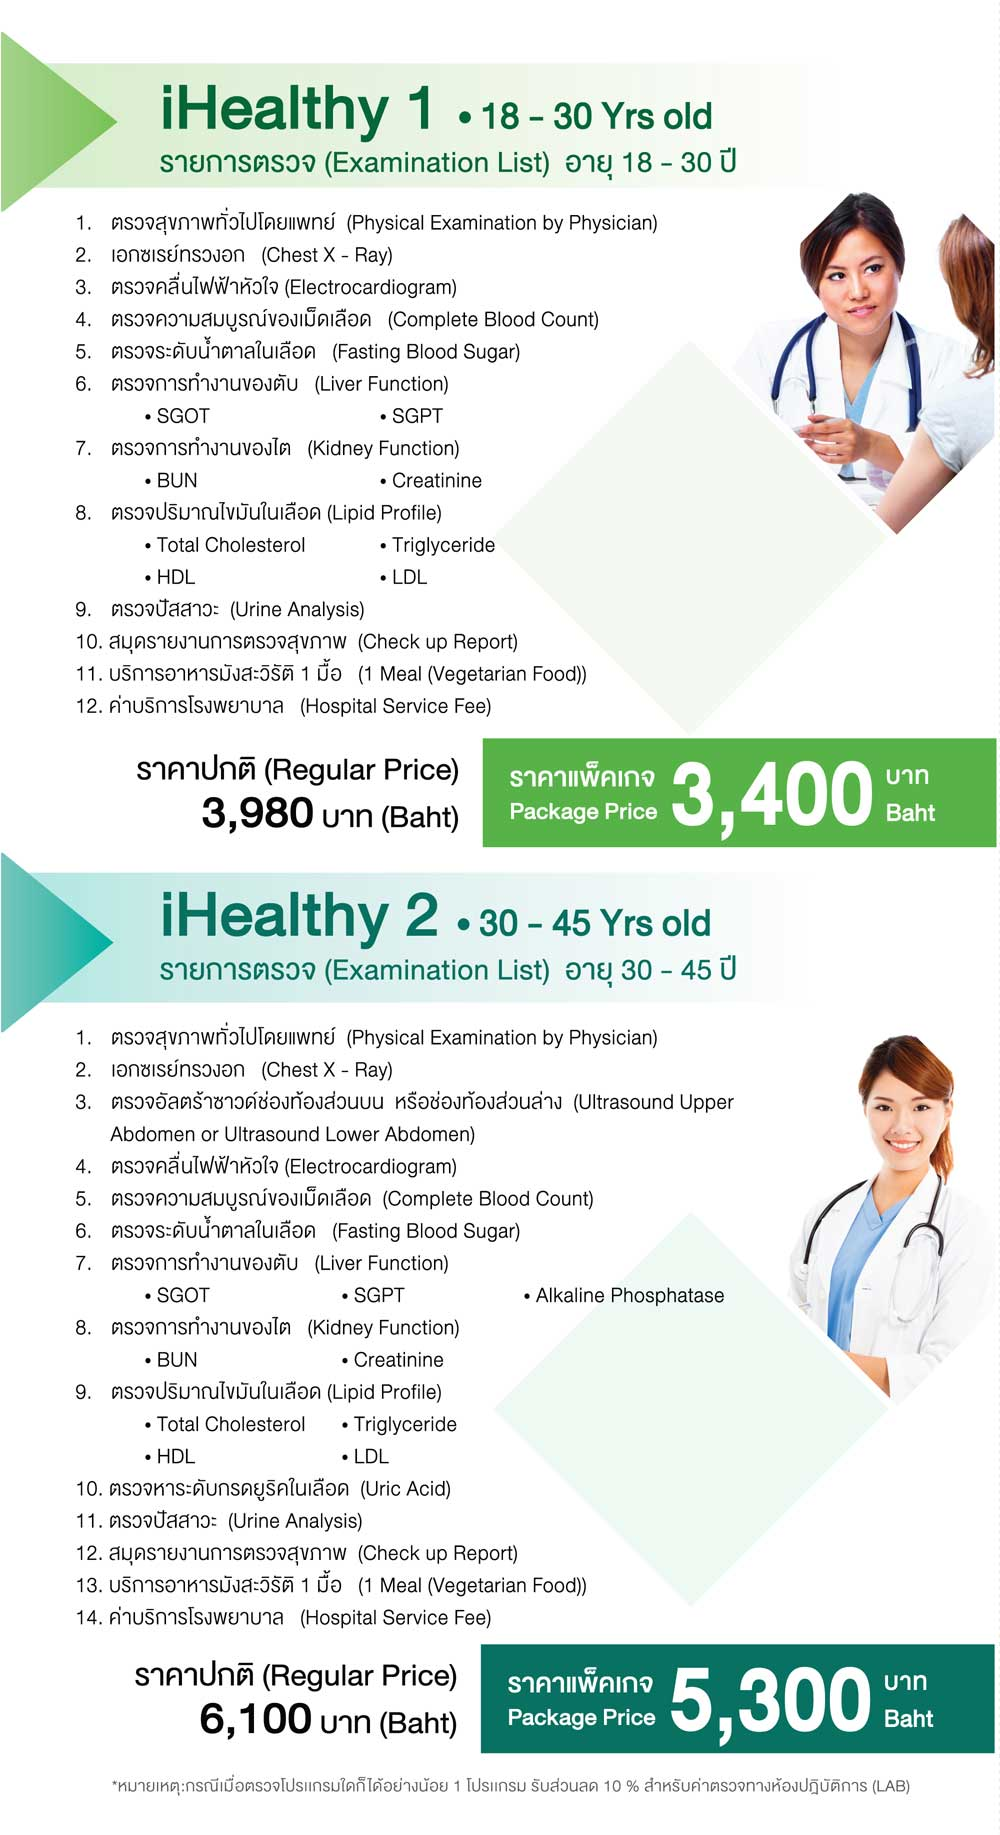 mission-hospital-package-promotion-ihealthy-01.jpg